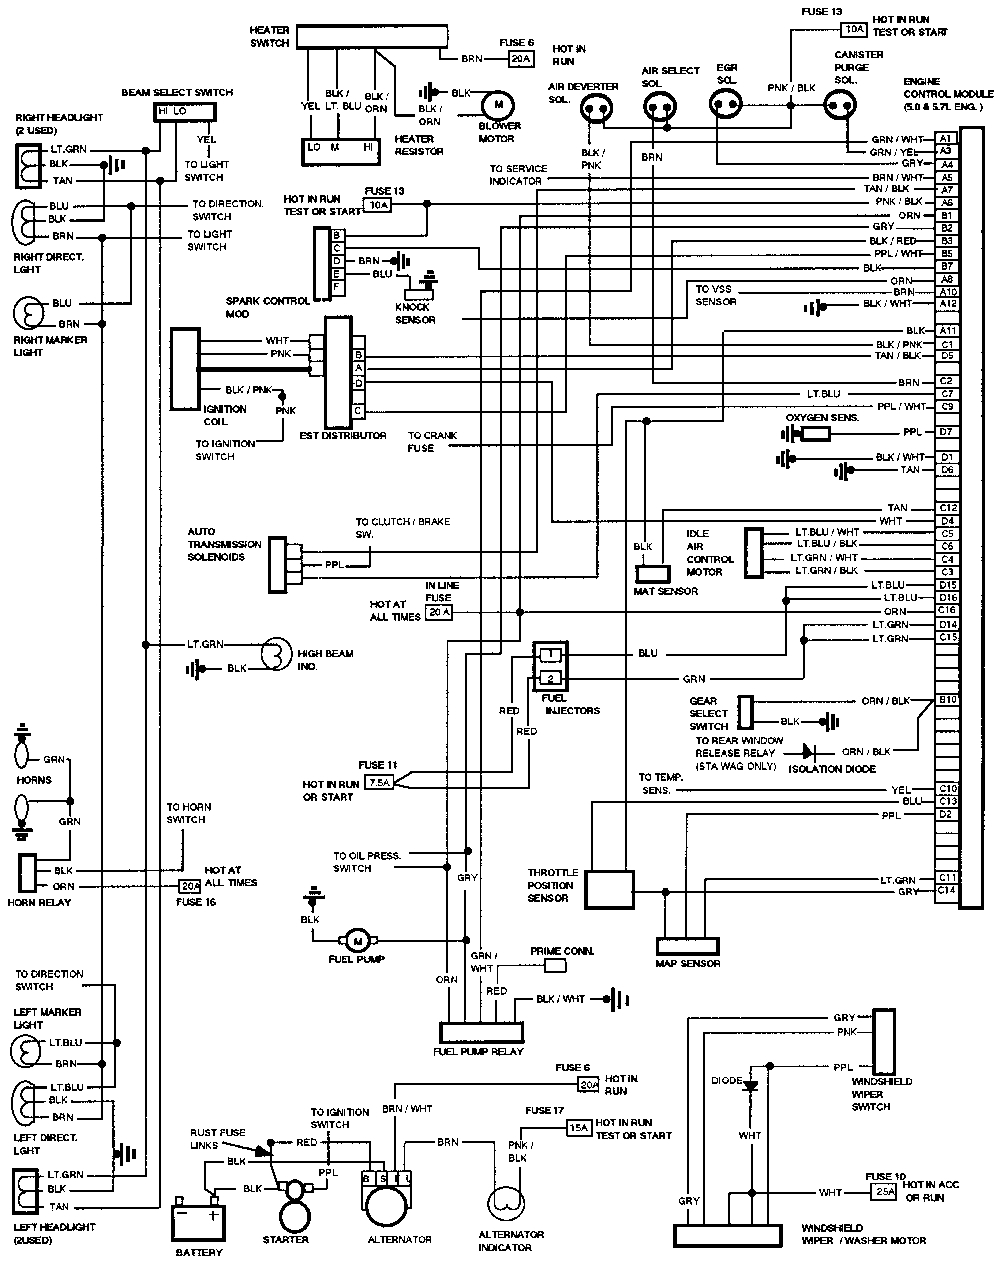 Link Belt Excavator Wiring Diagram Gallery Besides John Deere Backhoe As Well Neutral Safety Switch In Rh